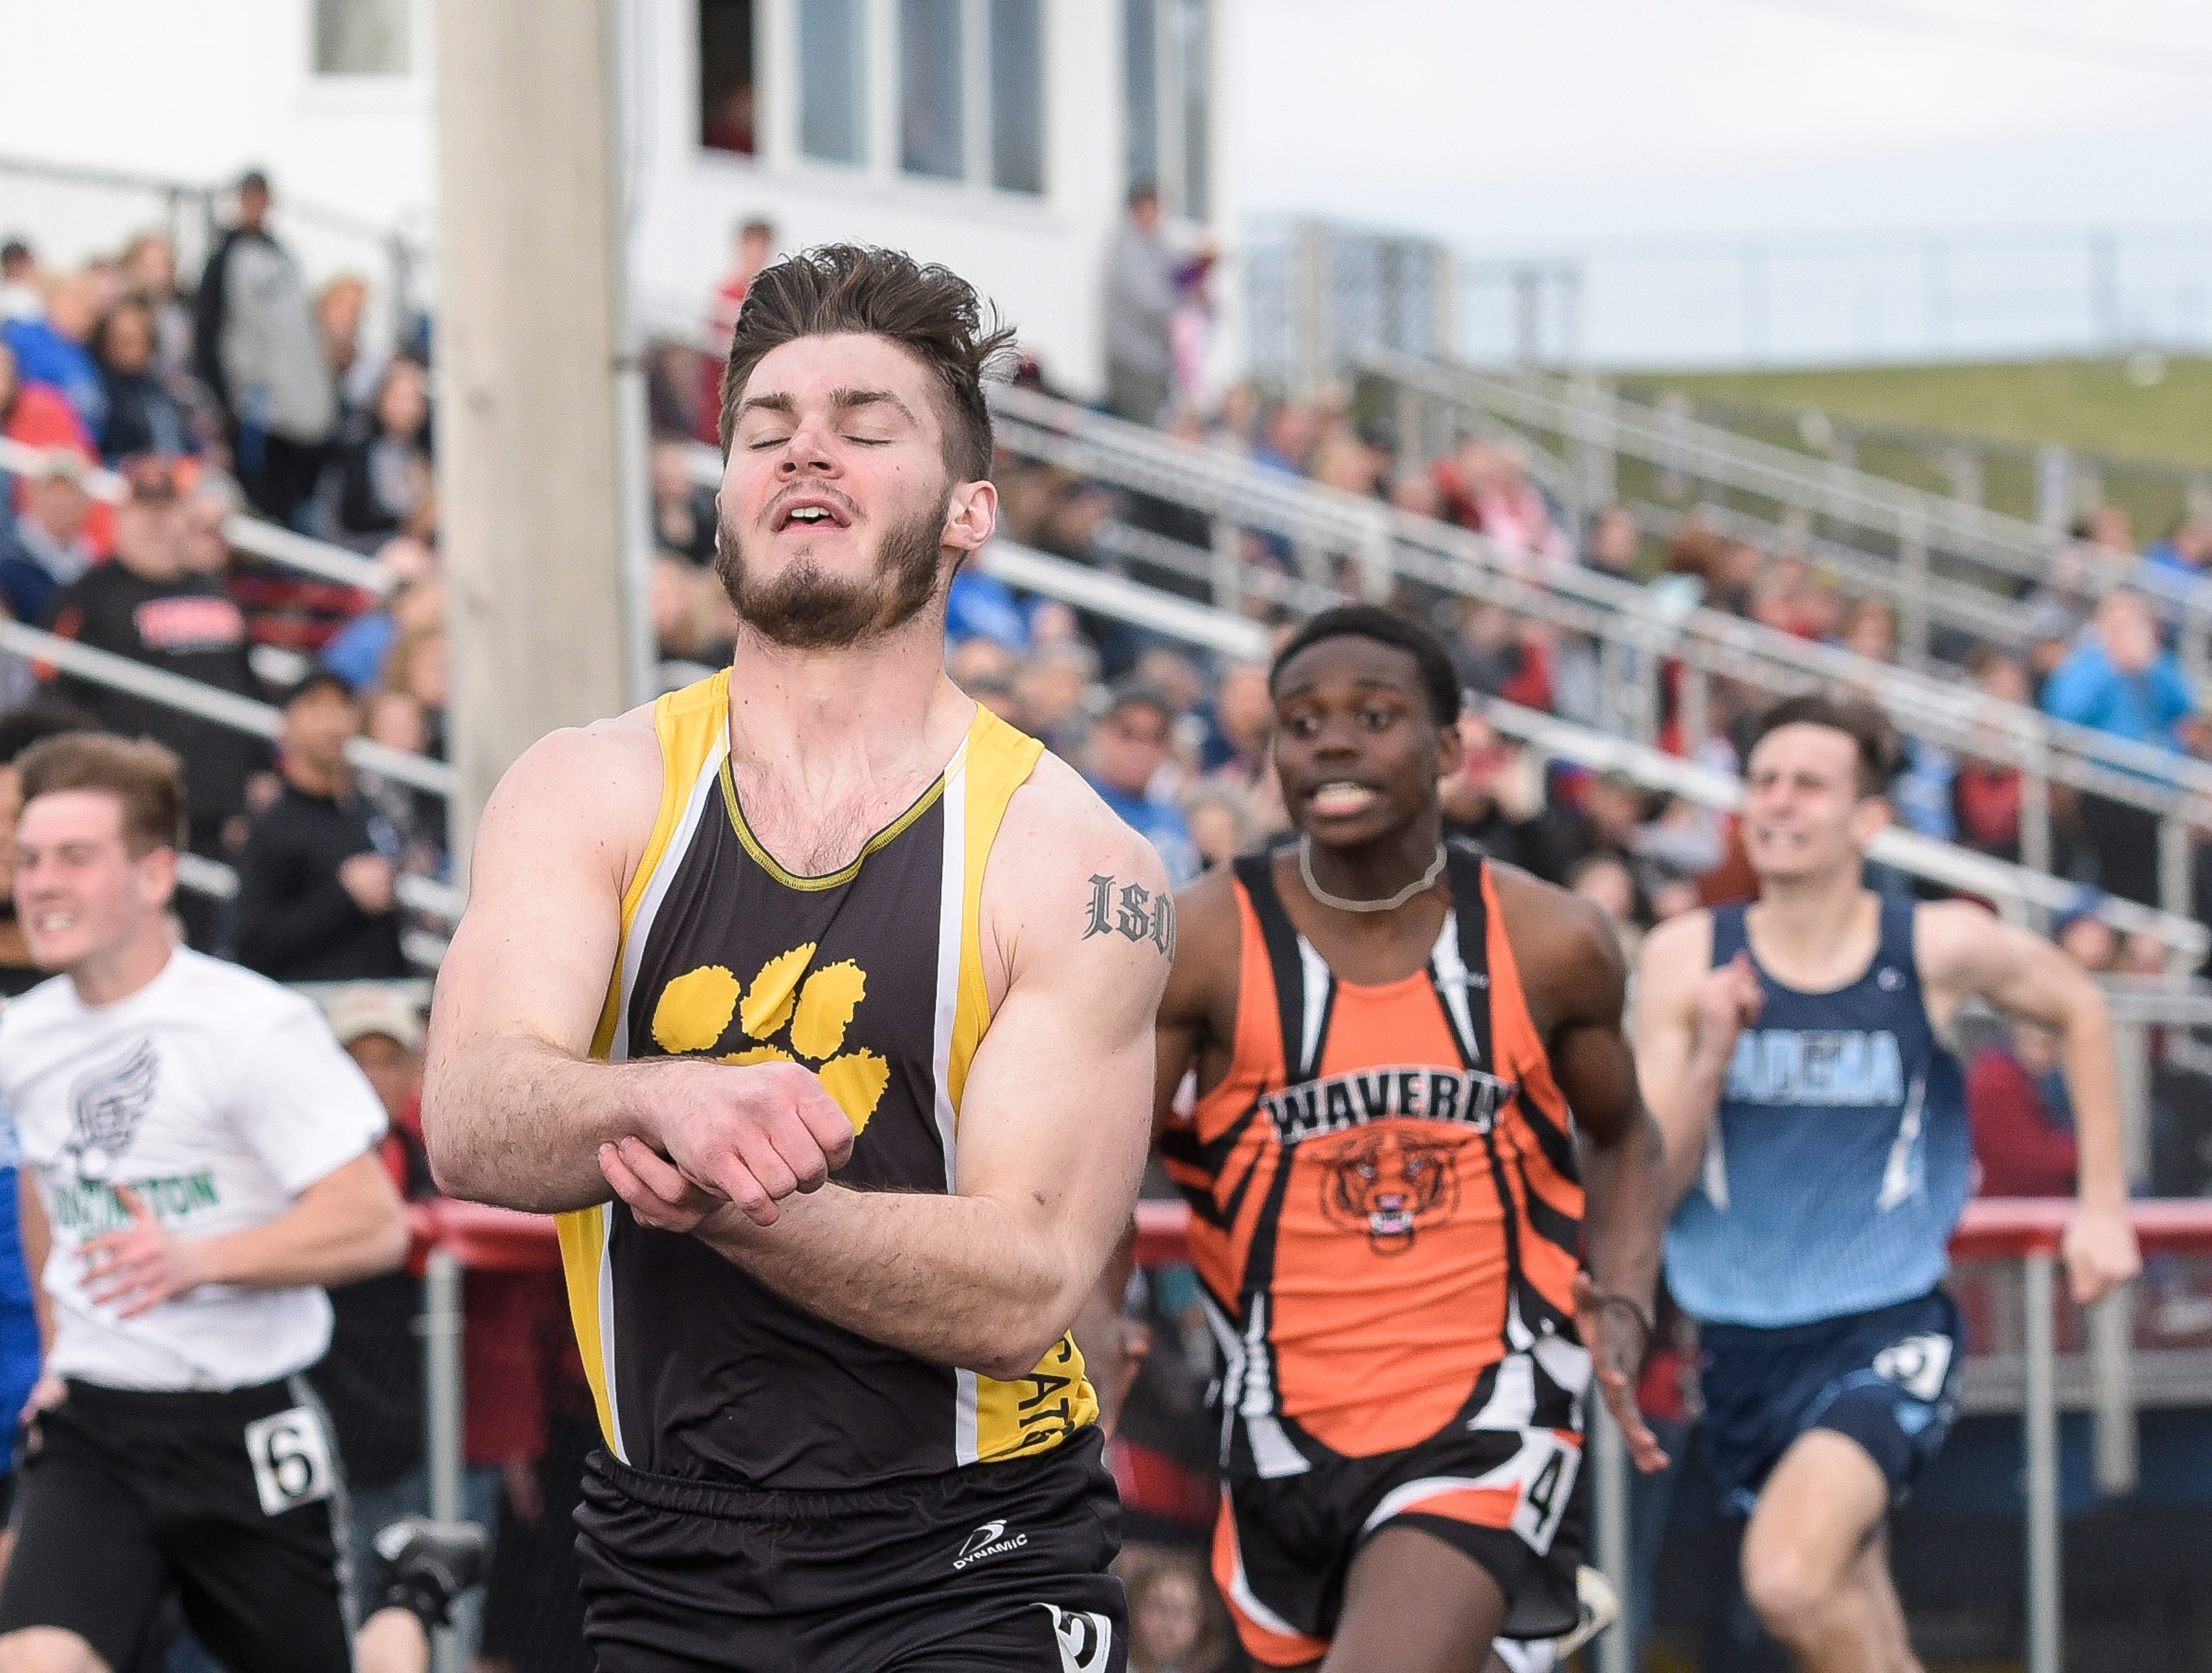 Paint Valley's Brayden Ison took first place in the boys' 100-meter dash with a time of 11.31 Thursday night at the Zane Trace Invitational on March 28, 2019. The Chillicothe High School track team took top local honors at the Zane Trace Invitational at Zane Trace High School. The girls took first overall with the boys taking second.